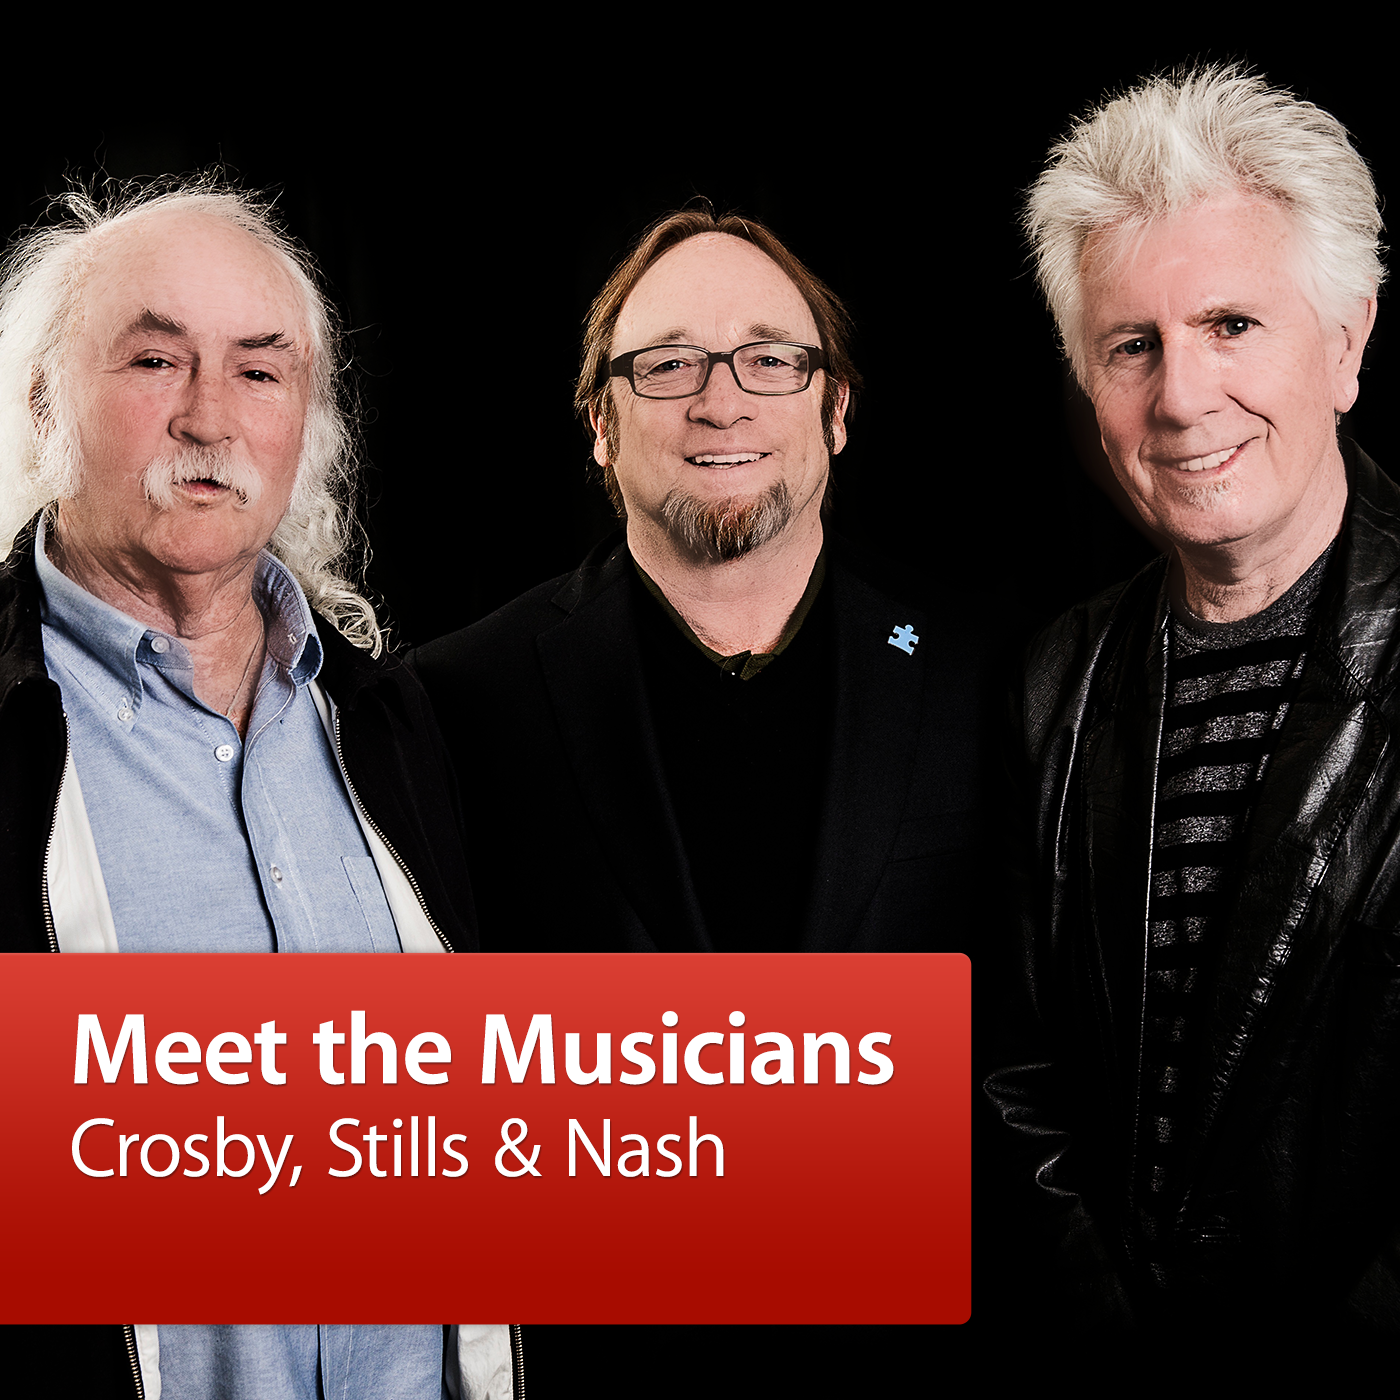 Crosby, Stills & Nash: Meet the Musicians